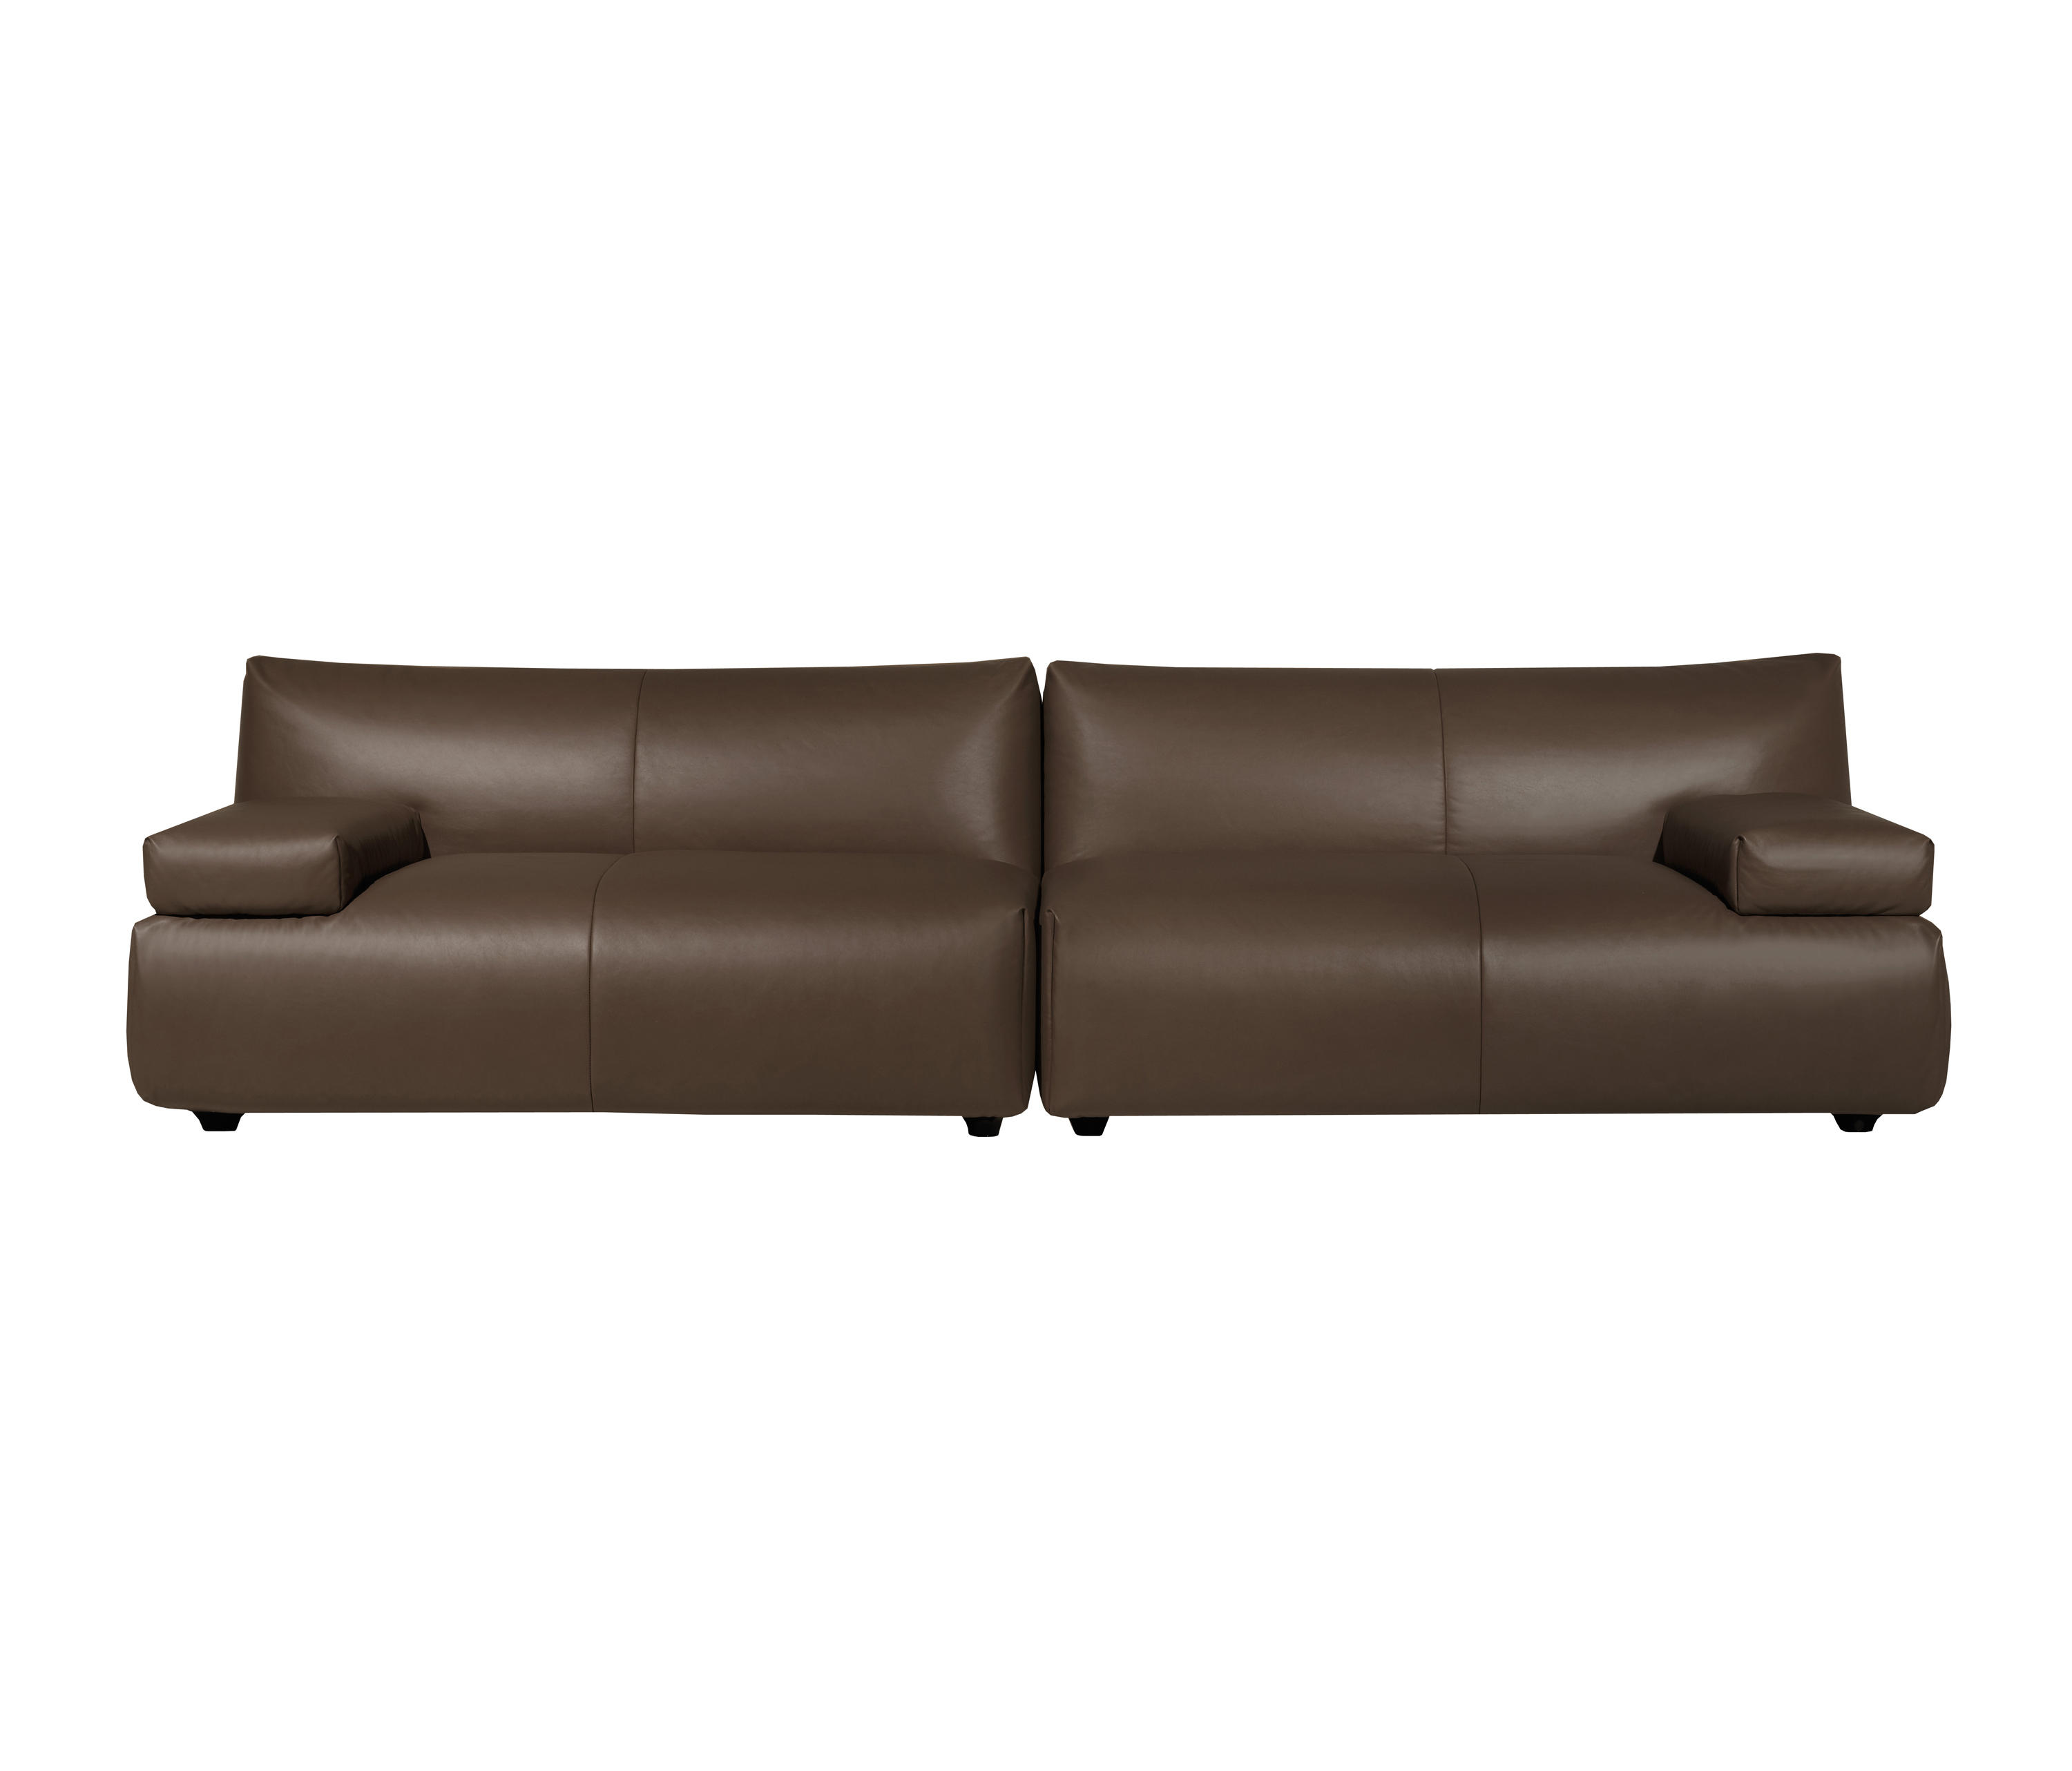 stylish sectional recliners available based reviews in relaxed configurations excessive sofa repair collections design this or parts casual spaces of split is leather and small